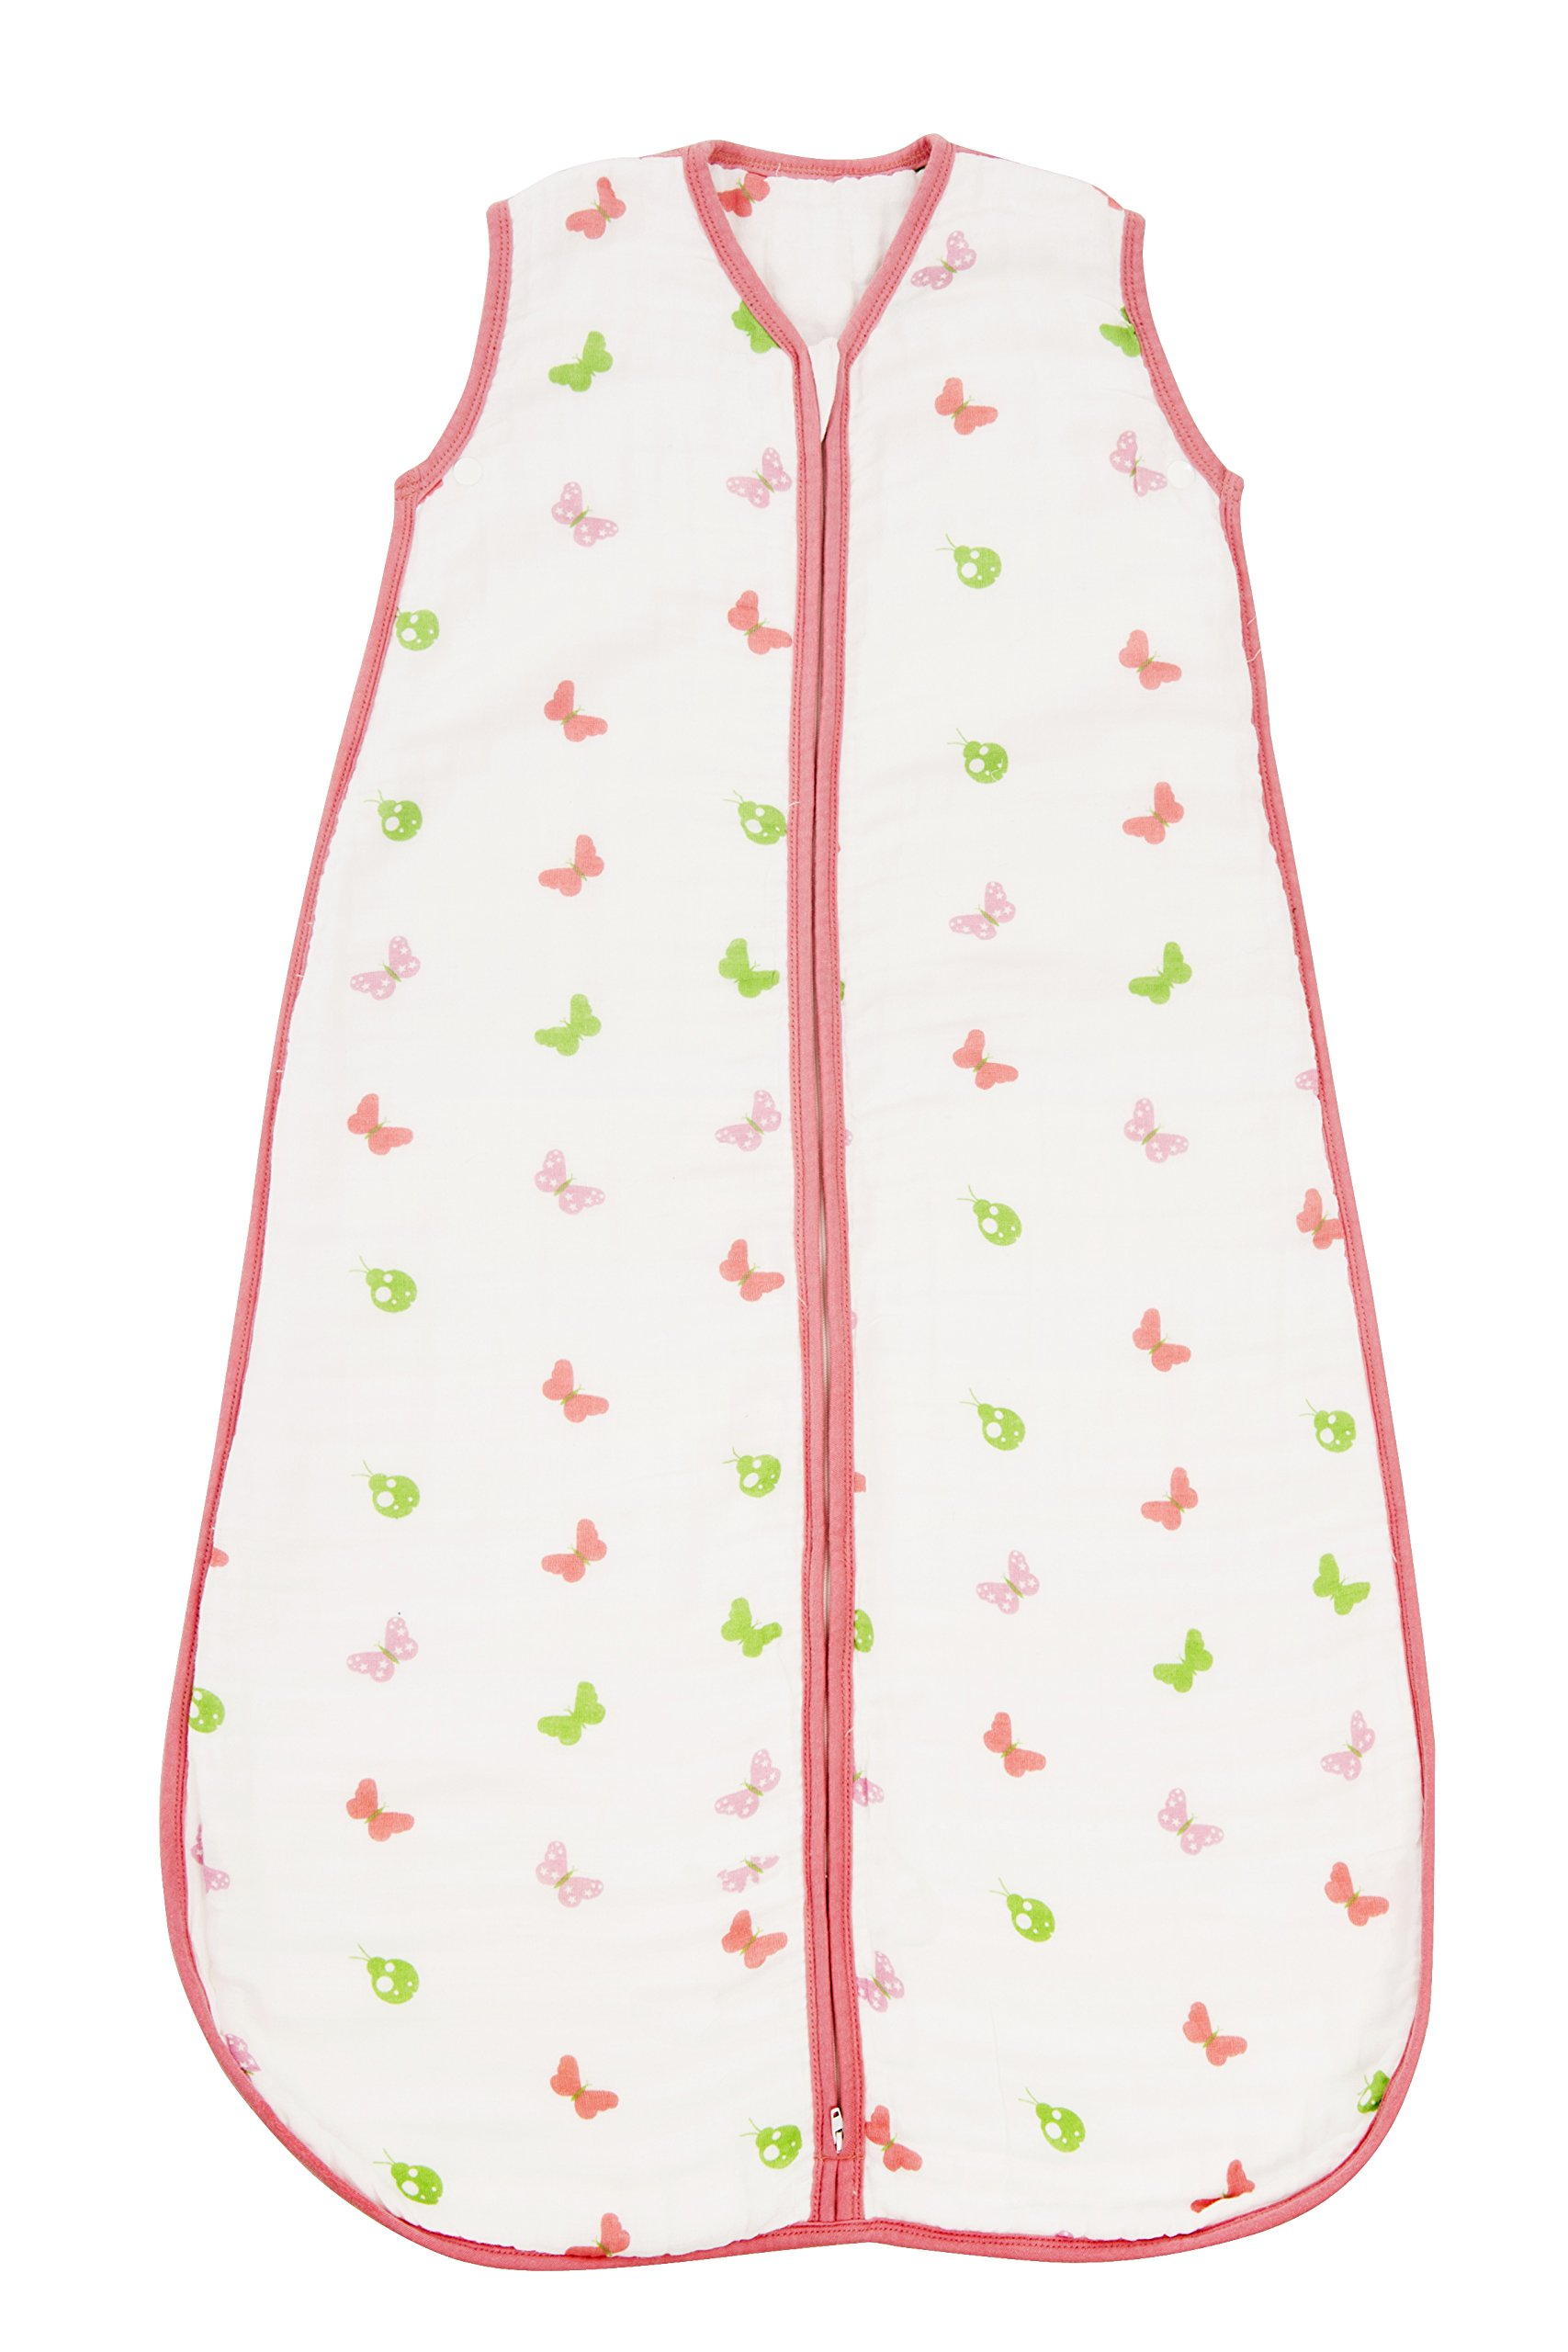 0 to 6 Months Pink Sky. Baby Sleeping Bag 100/% Cotton Softness and Freshness in one Single Fabric Layer 0.5 TOG molis /& co Ideal for Summer